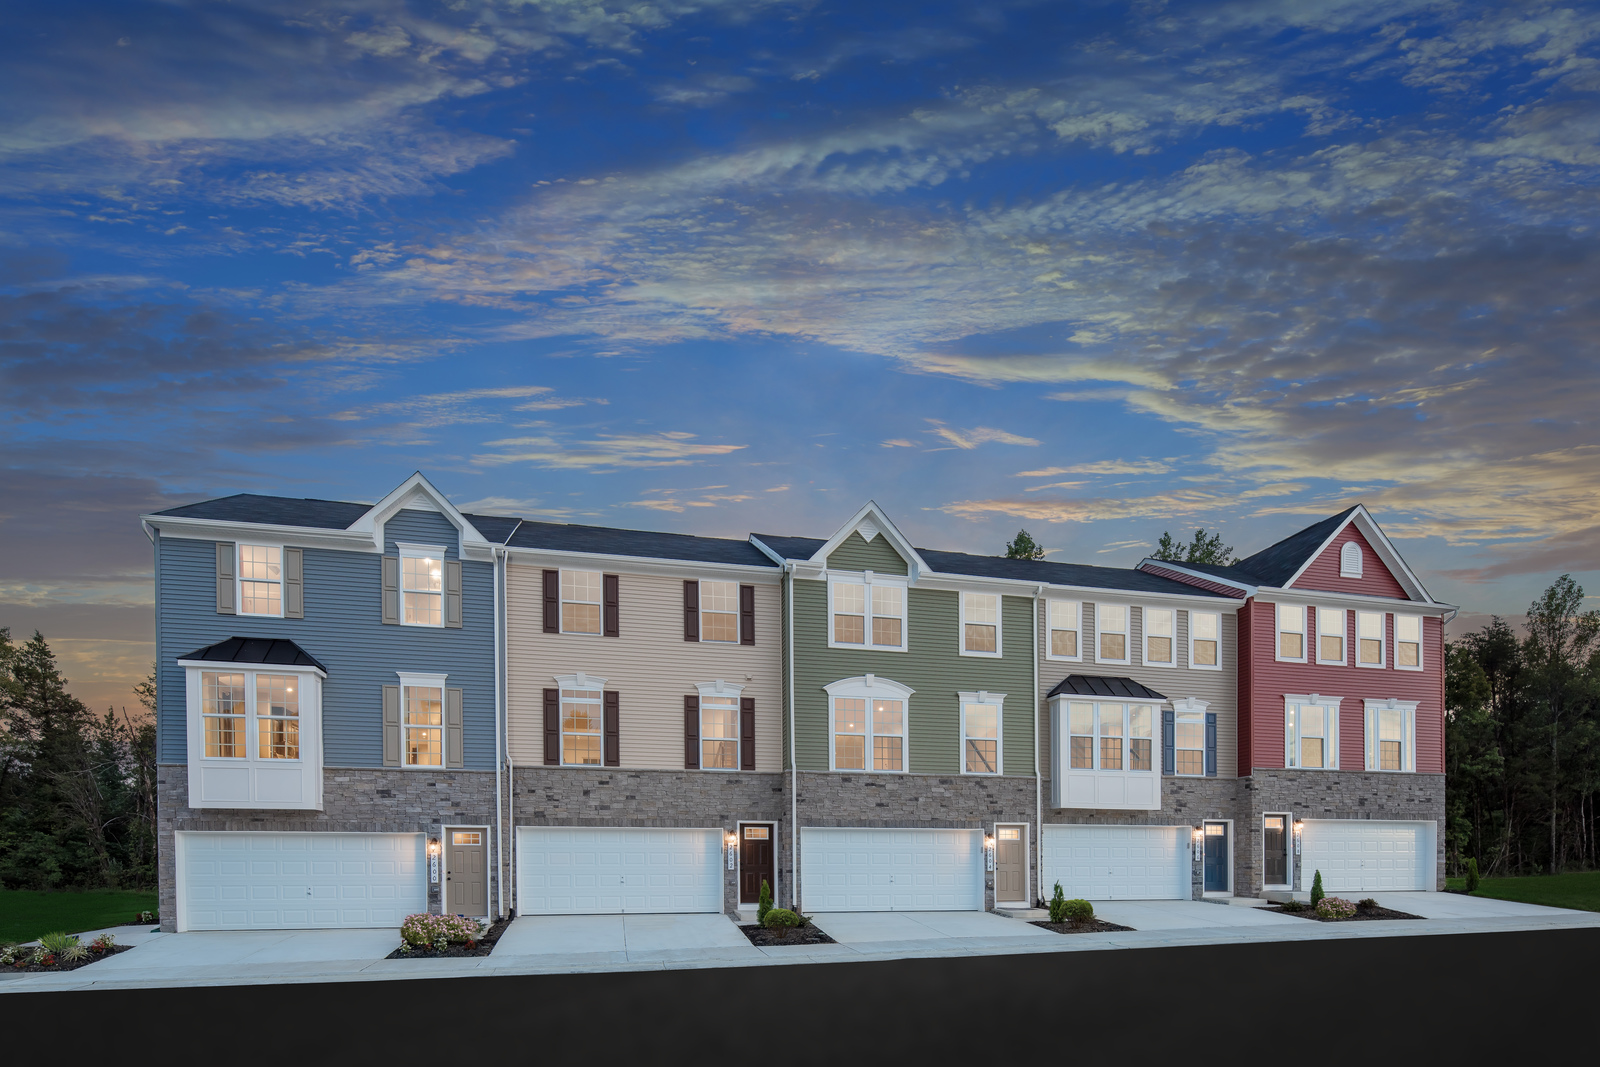 New Homes for sale at Wheatland Station in Fredericksburg, VA within ...